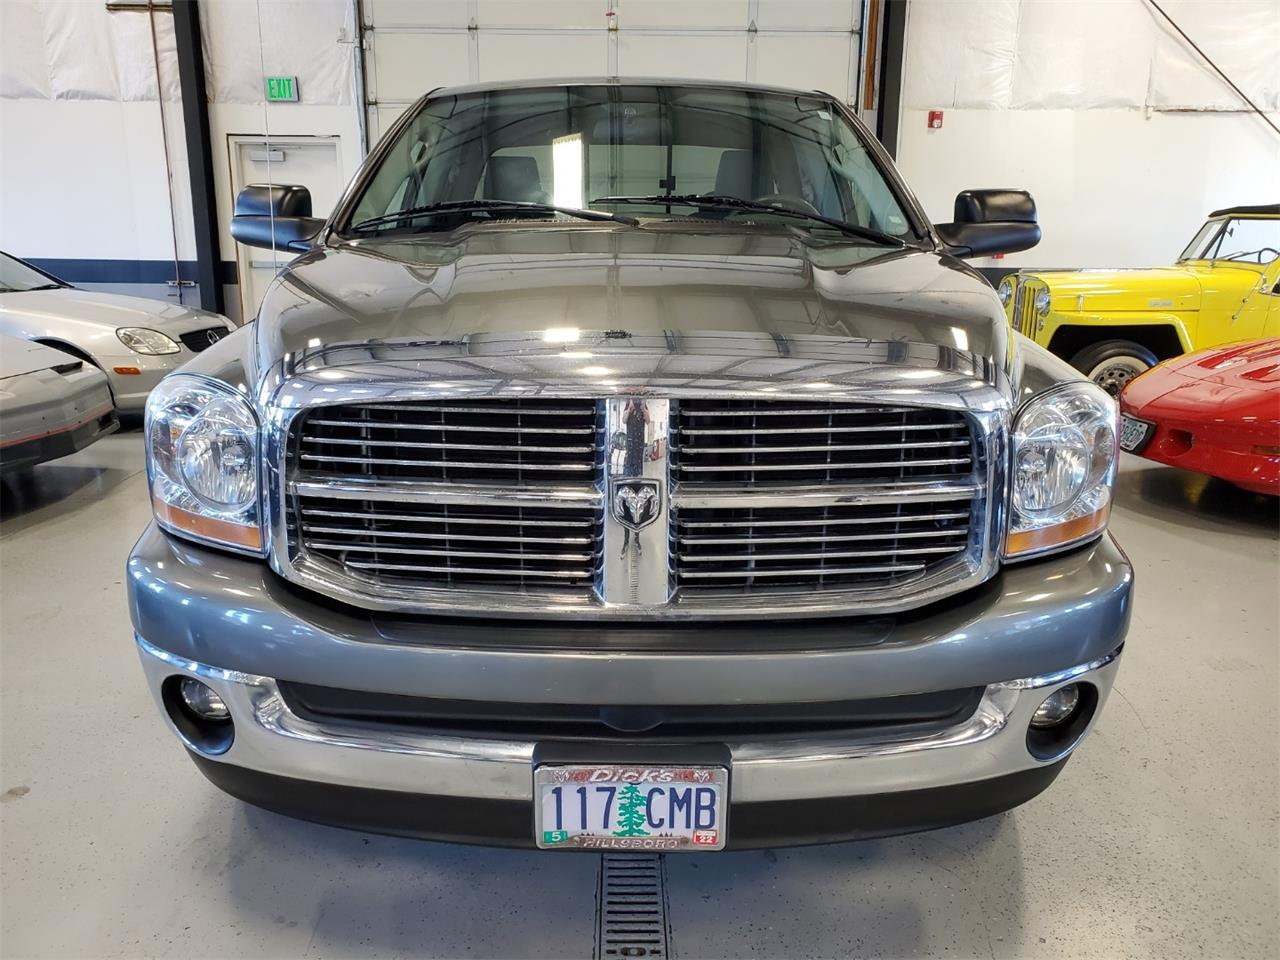 2006 Dodge Ram 1500 (CC-1423522) for sale in Bend, Oregon